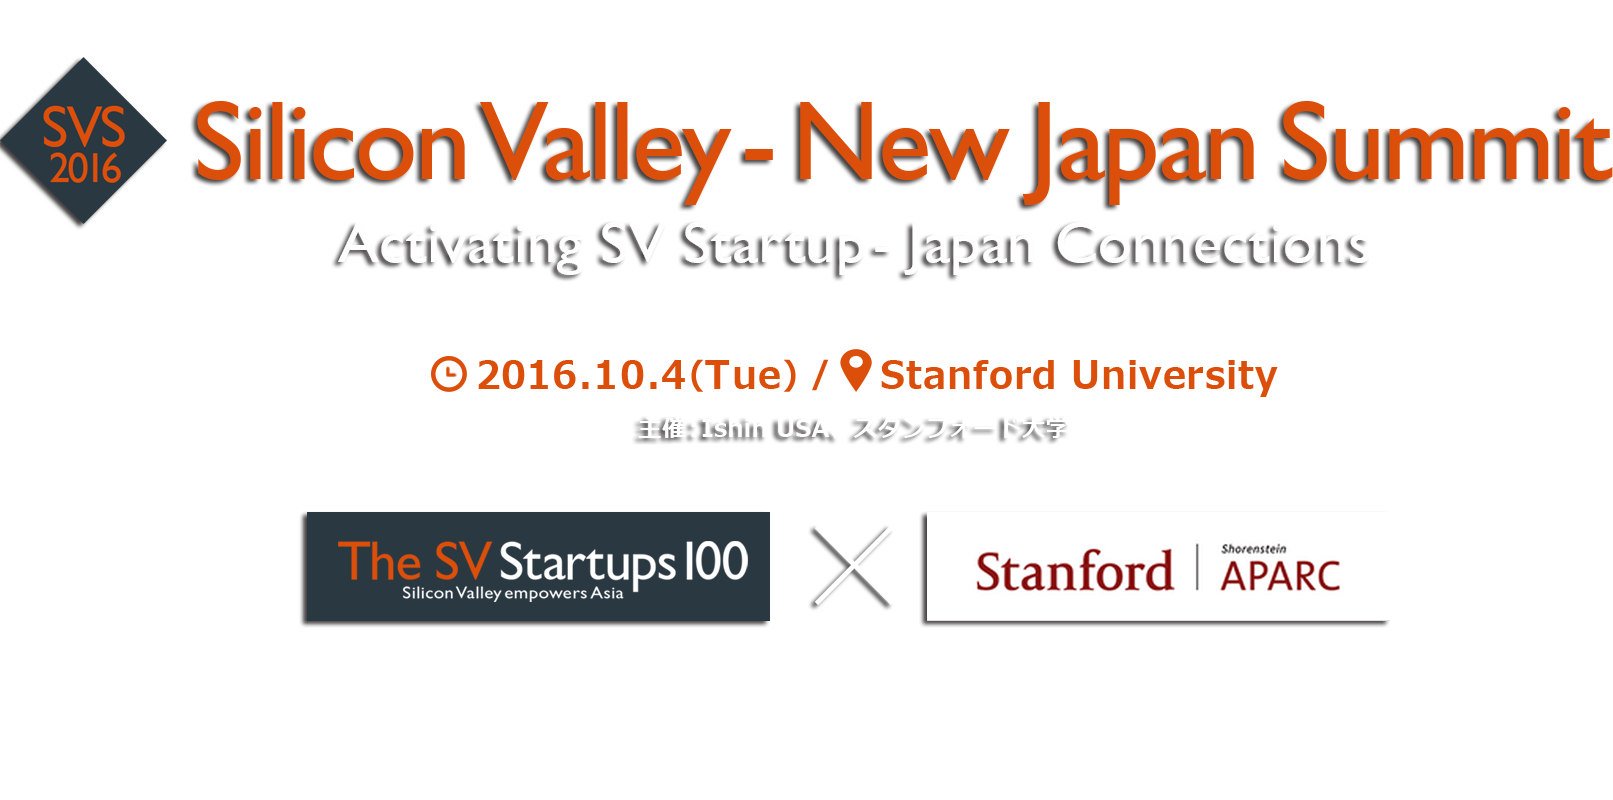 Silicon Valley - New Japan Summit